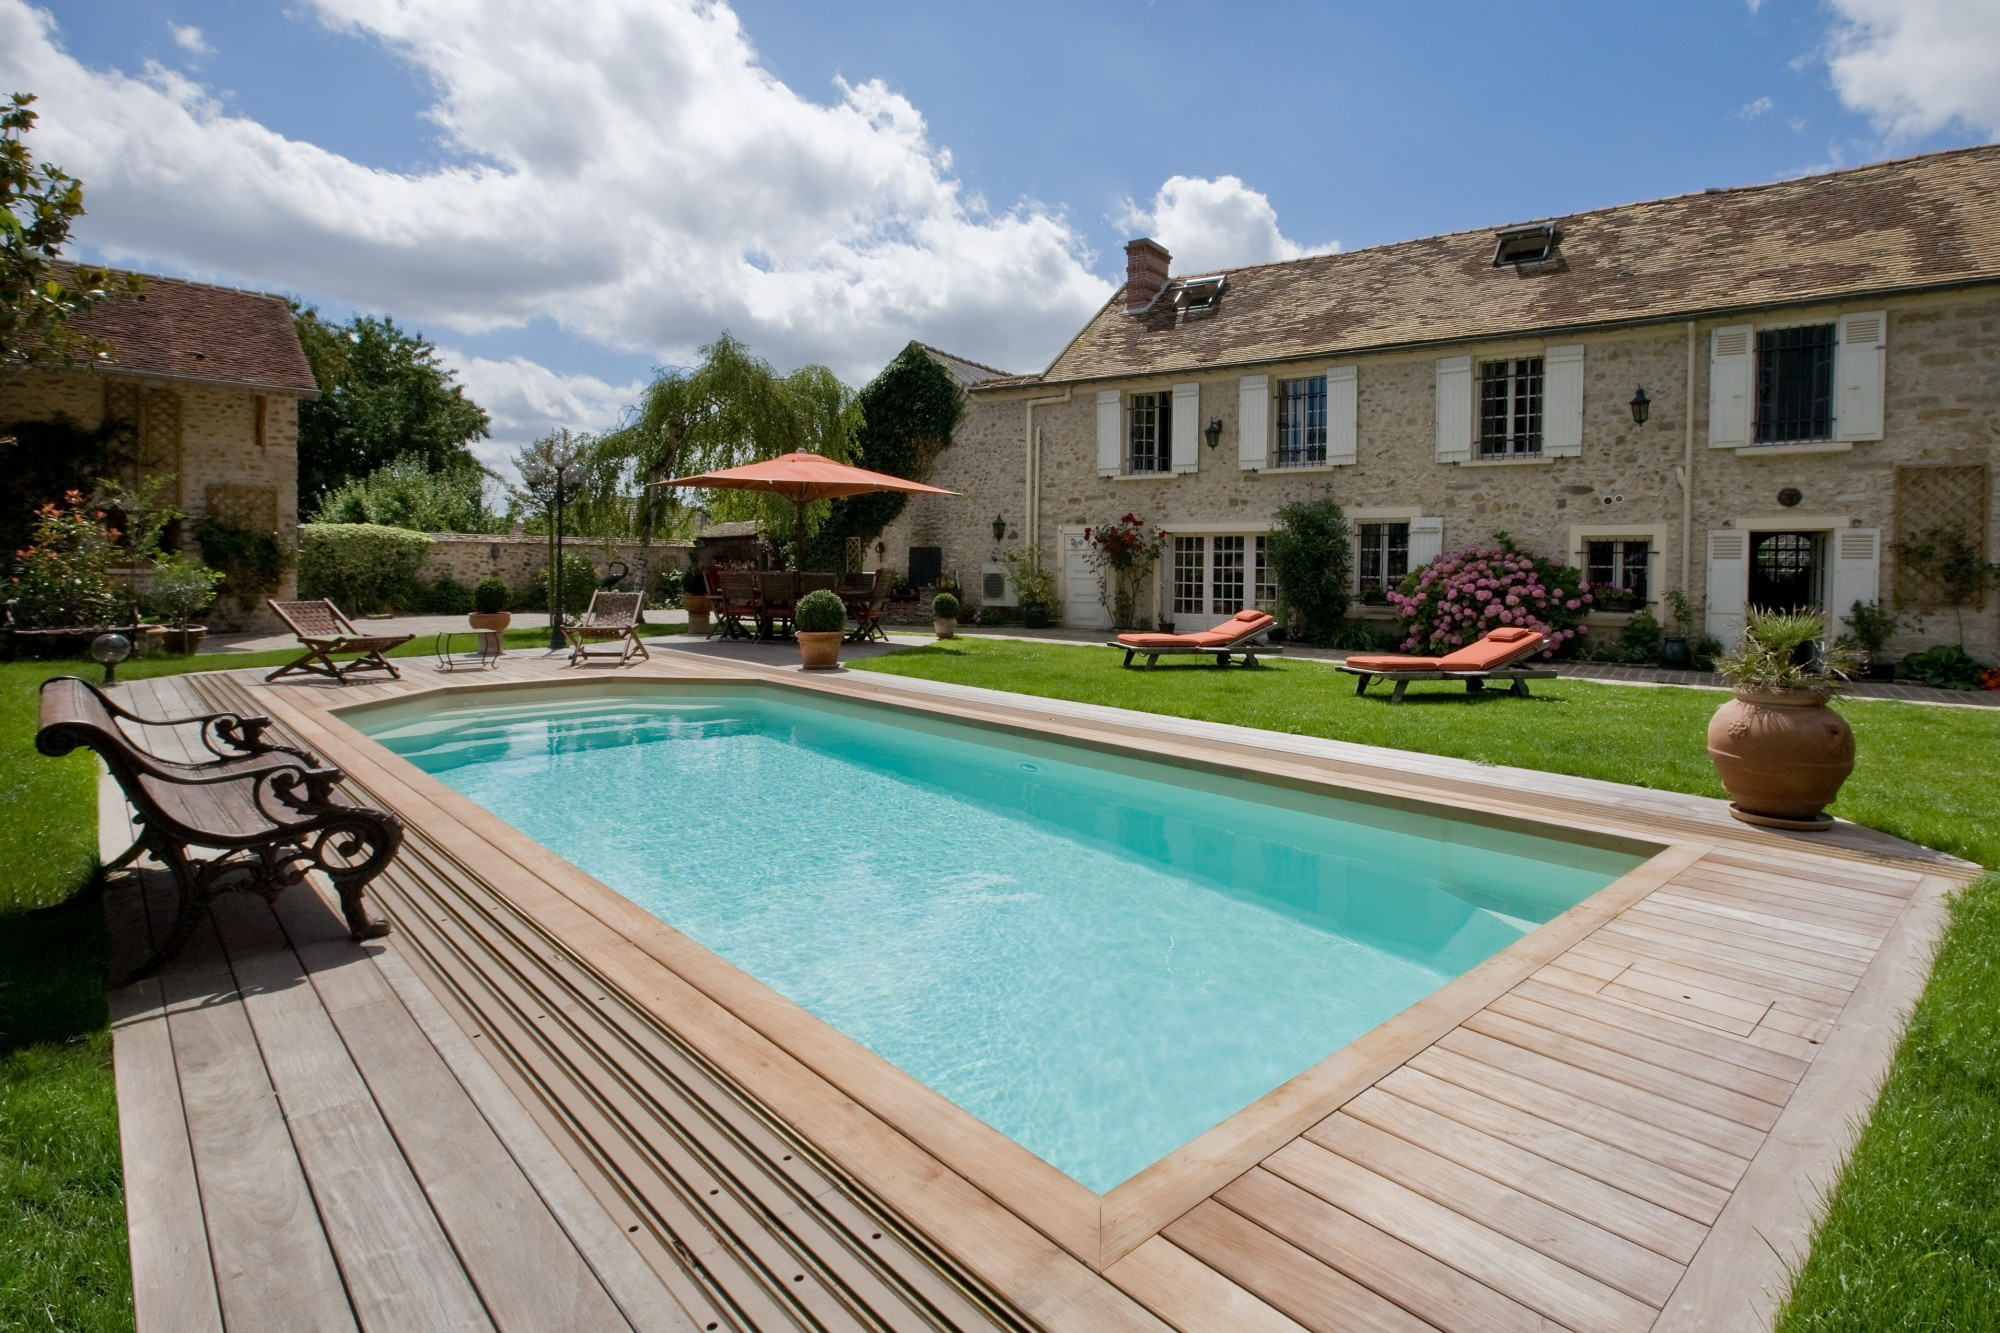 Piscine guide choix de solution co t et devis en ligne for Cout construction piscine beton